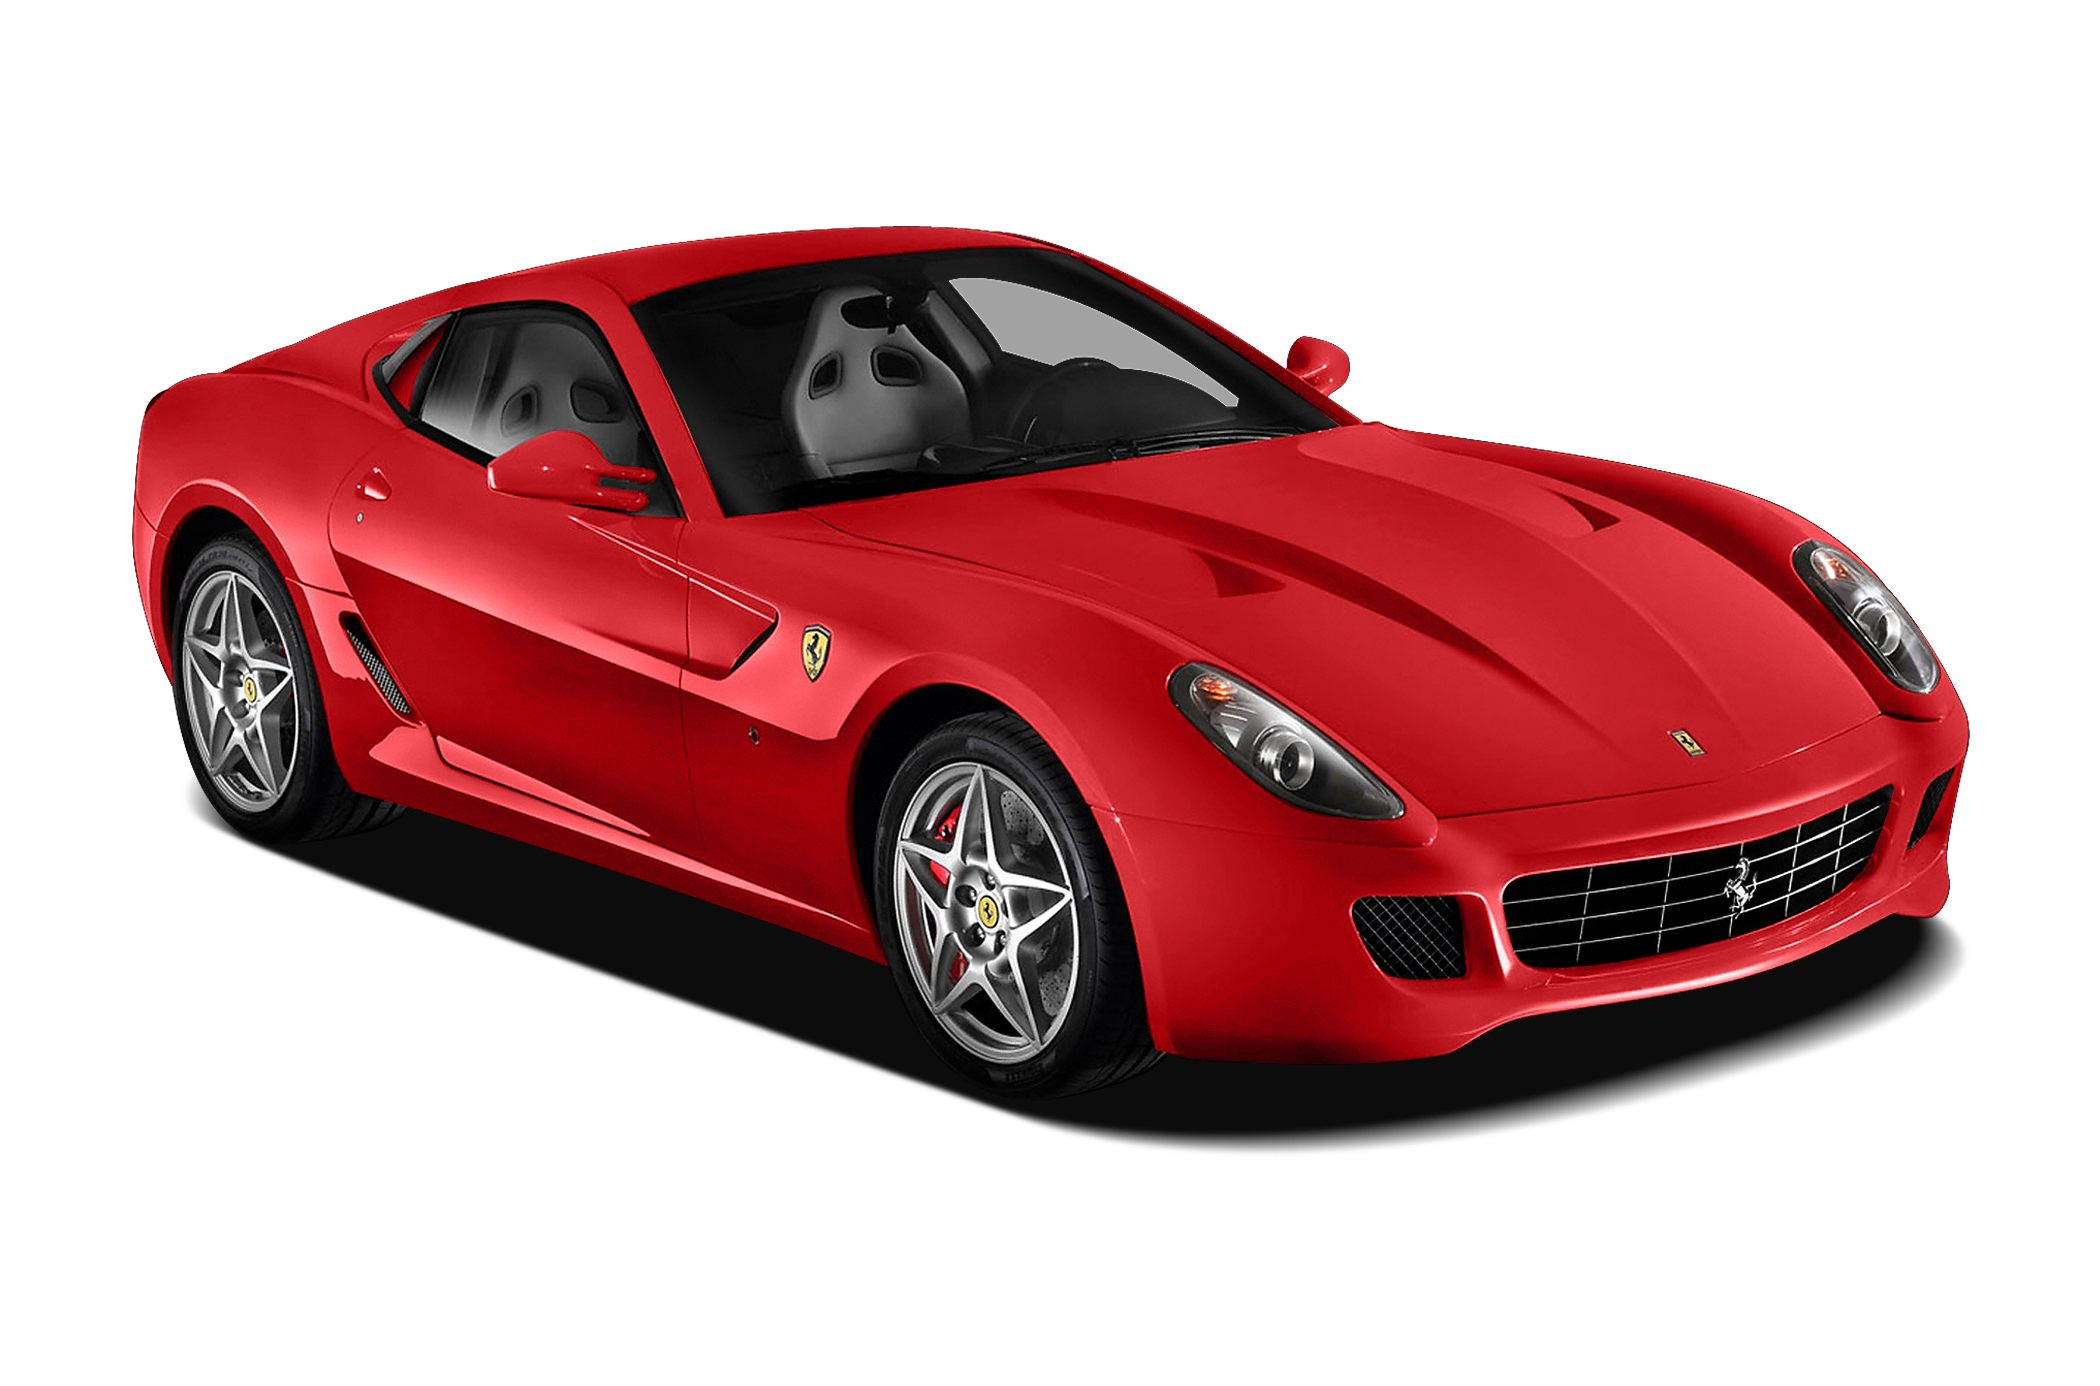 2009 Ferrari 599 Gtb Fiorano Base 2dr Coupe Pricing And Options